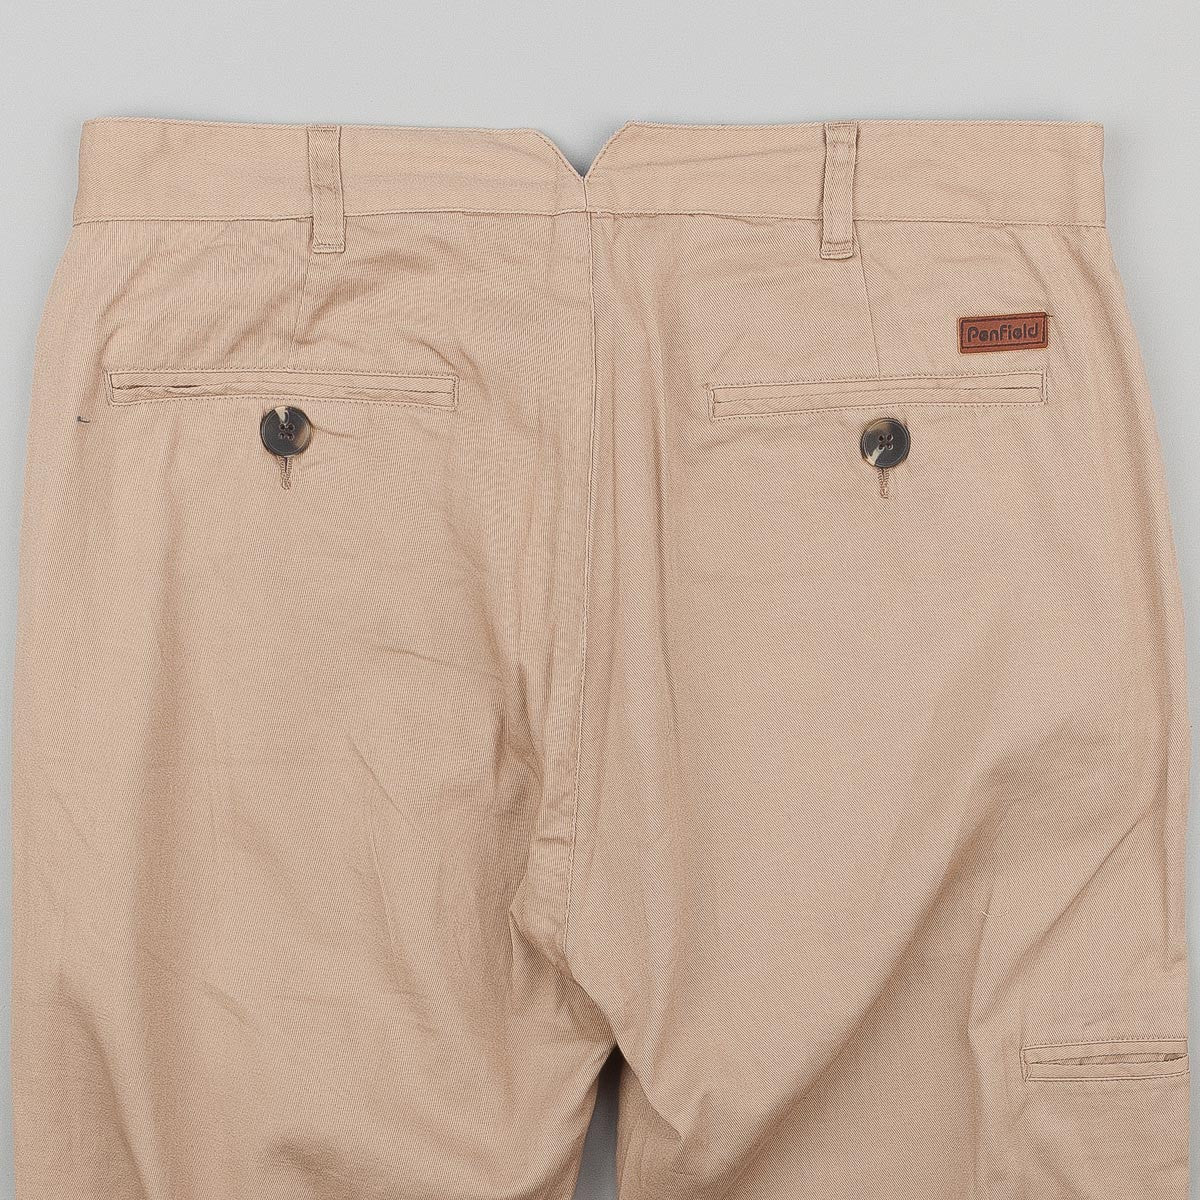 Penfield Millwood Trousers - Beige